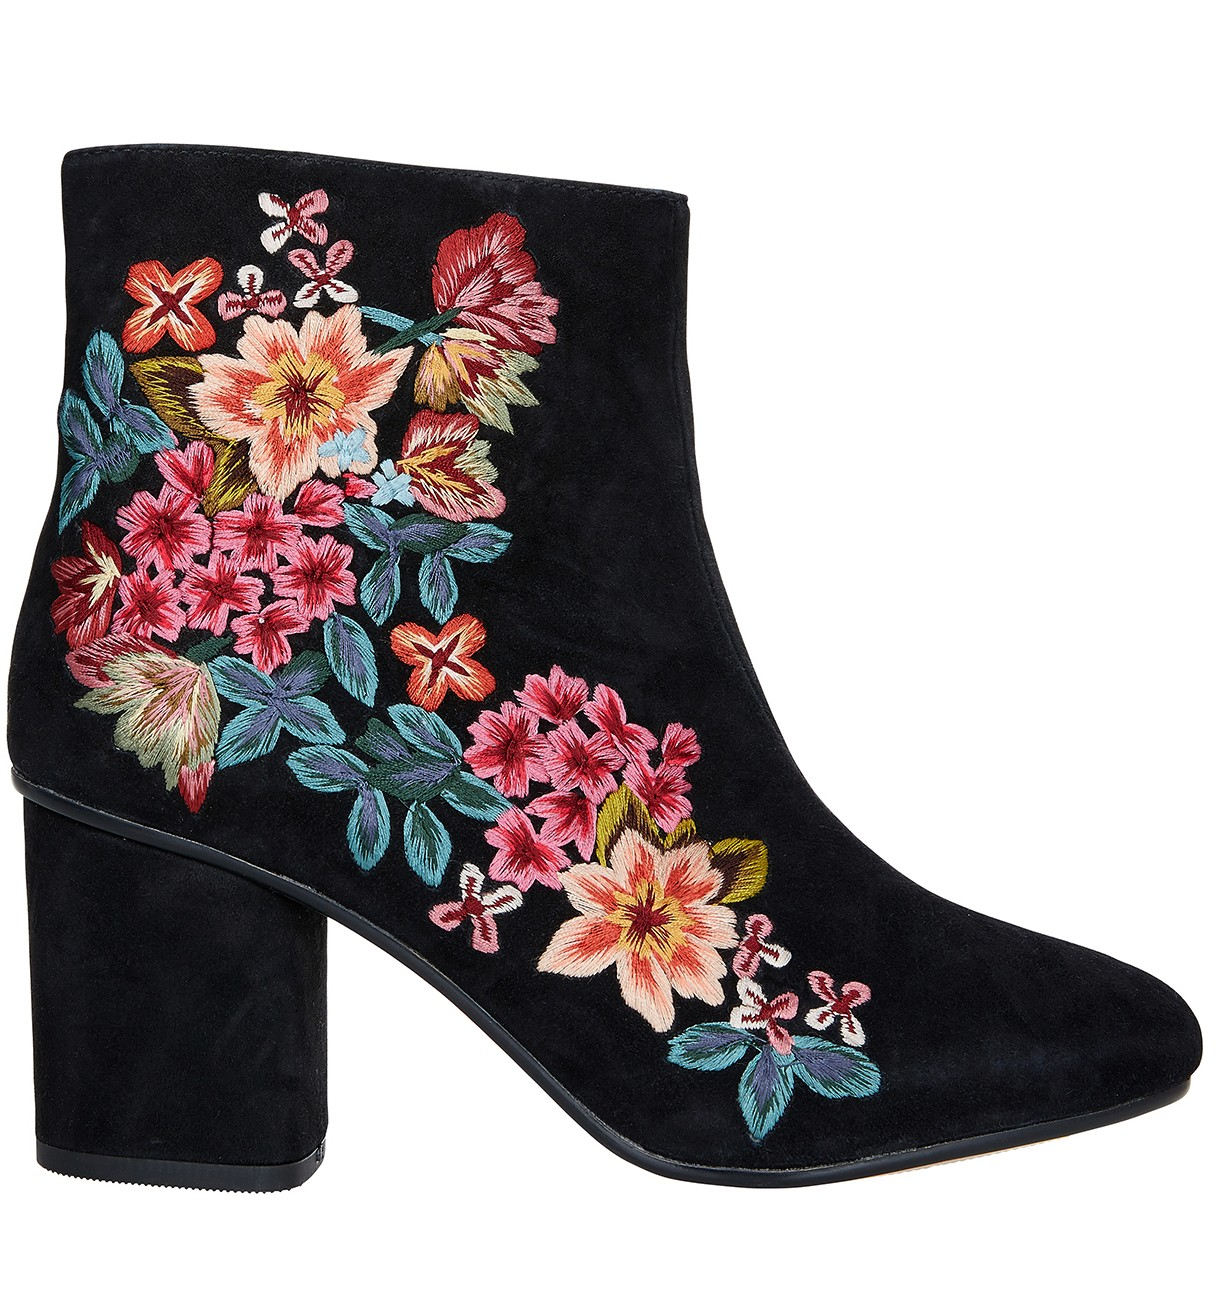 Best-Before-End-Date-10-Embroidered-Ankle-Boots-Autumn-2017